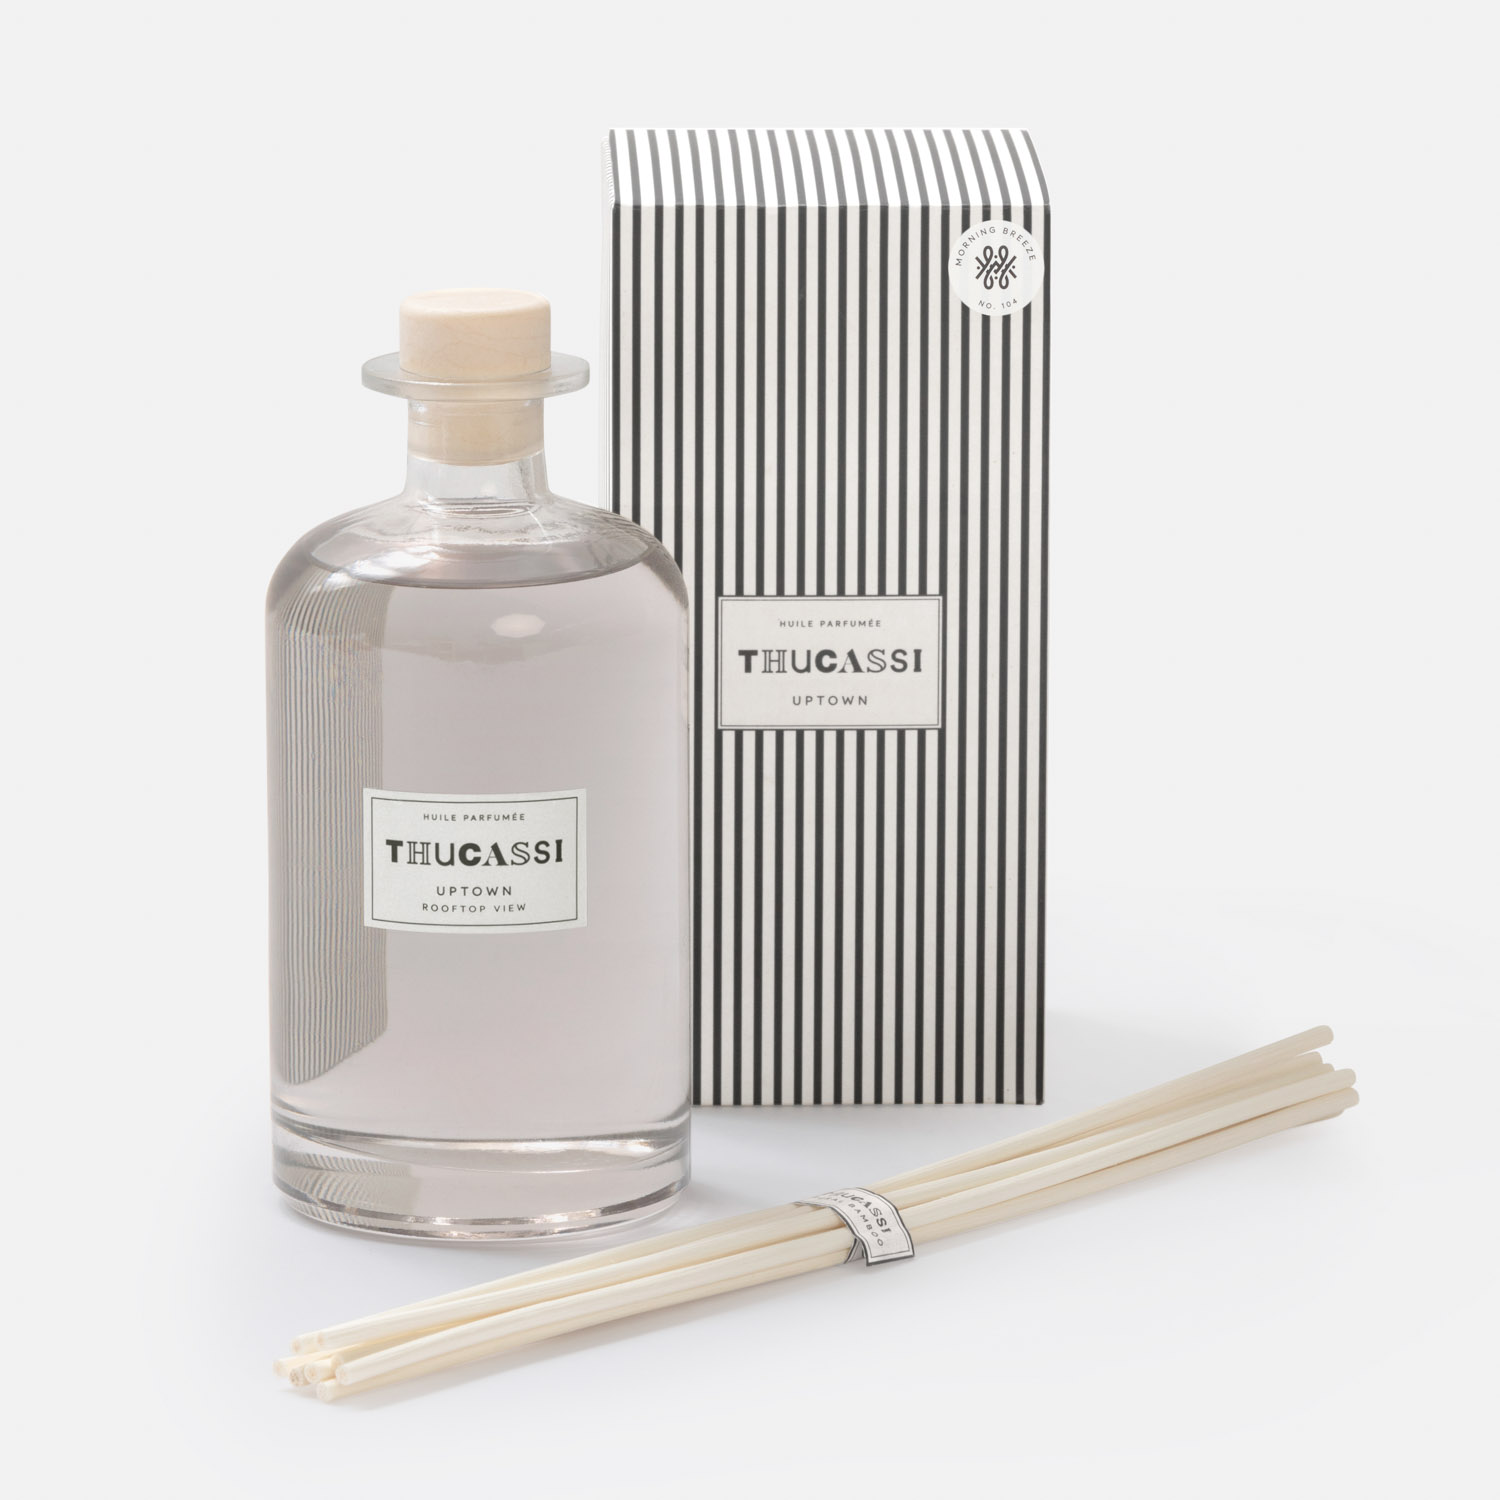 Thucassi-Uptown-Diffuser-500ml-RooftopView-4.jpg